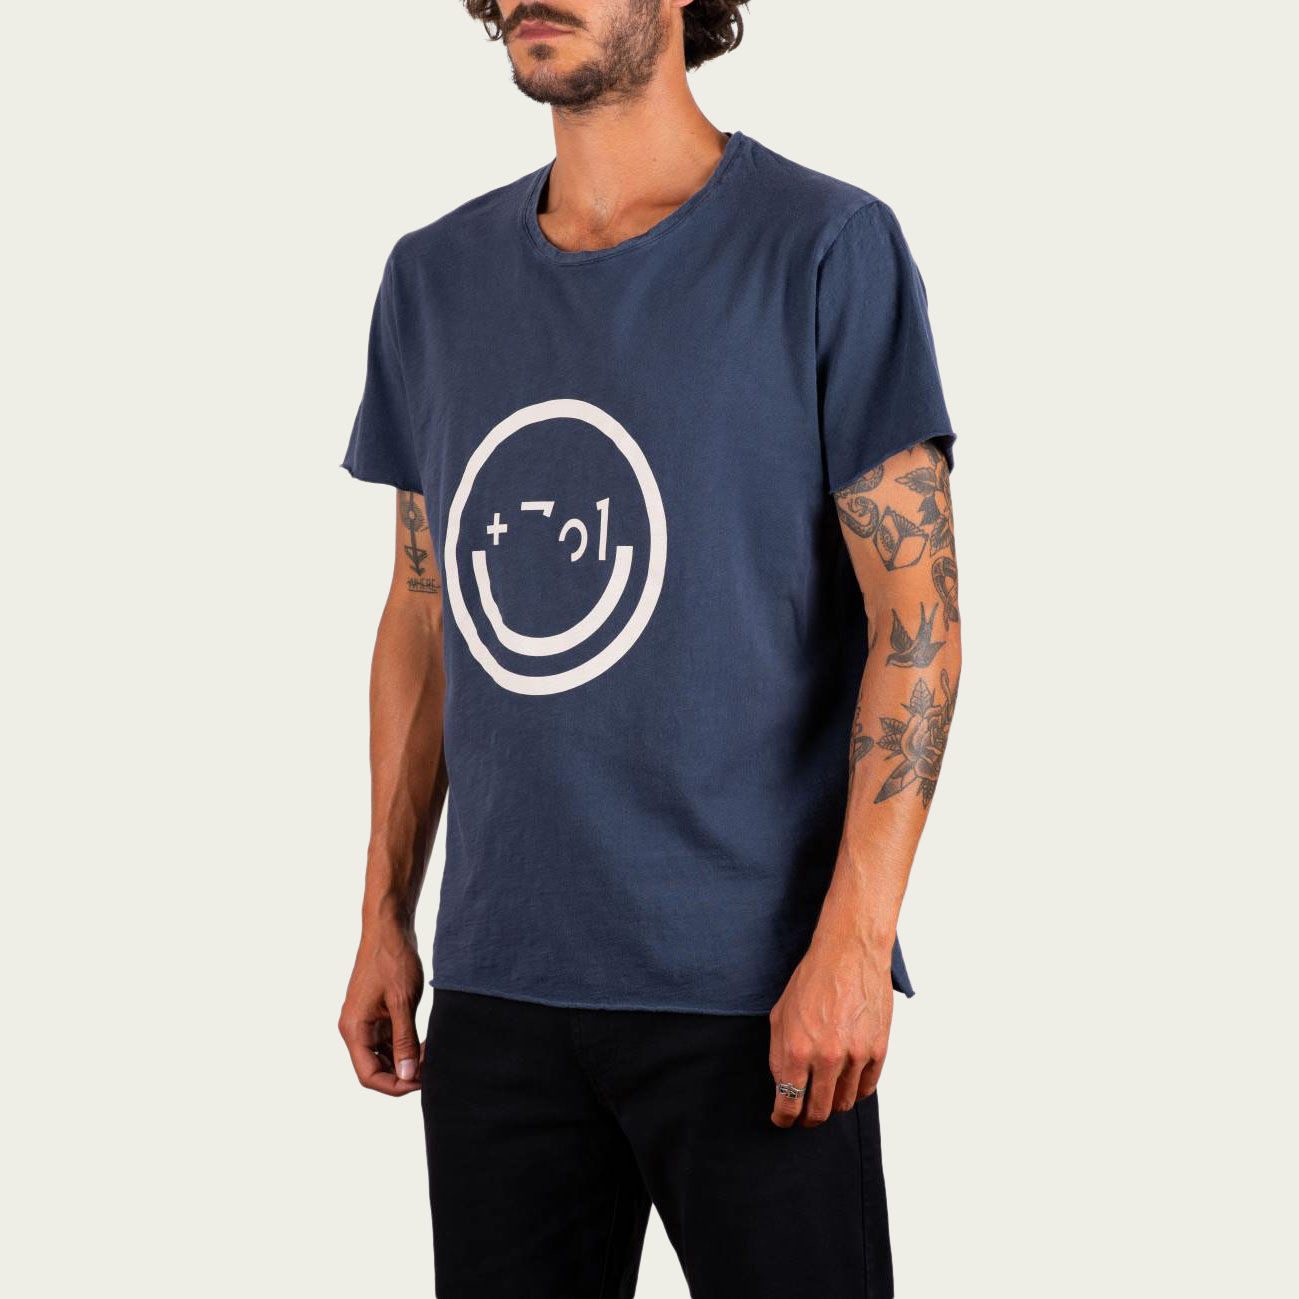 Blue and Sand Smiley Tee-shirt | Bombinate